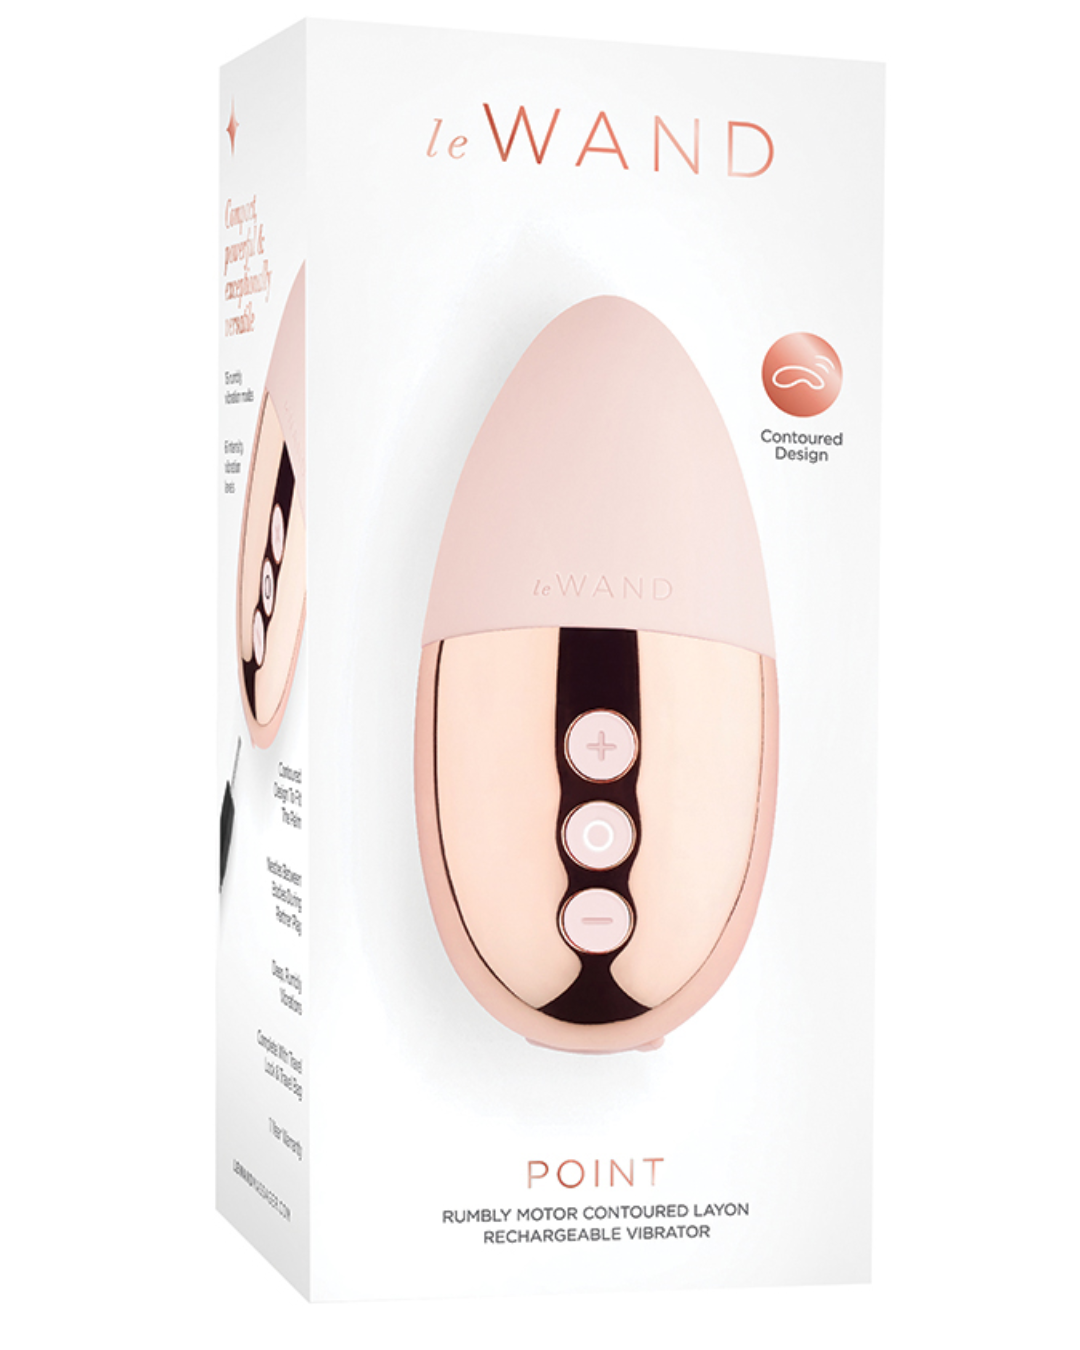 Le Wand Point Weighted Waterproof Silicone Lay-On Vibrator - Rose Gold box